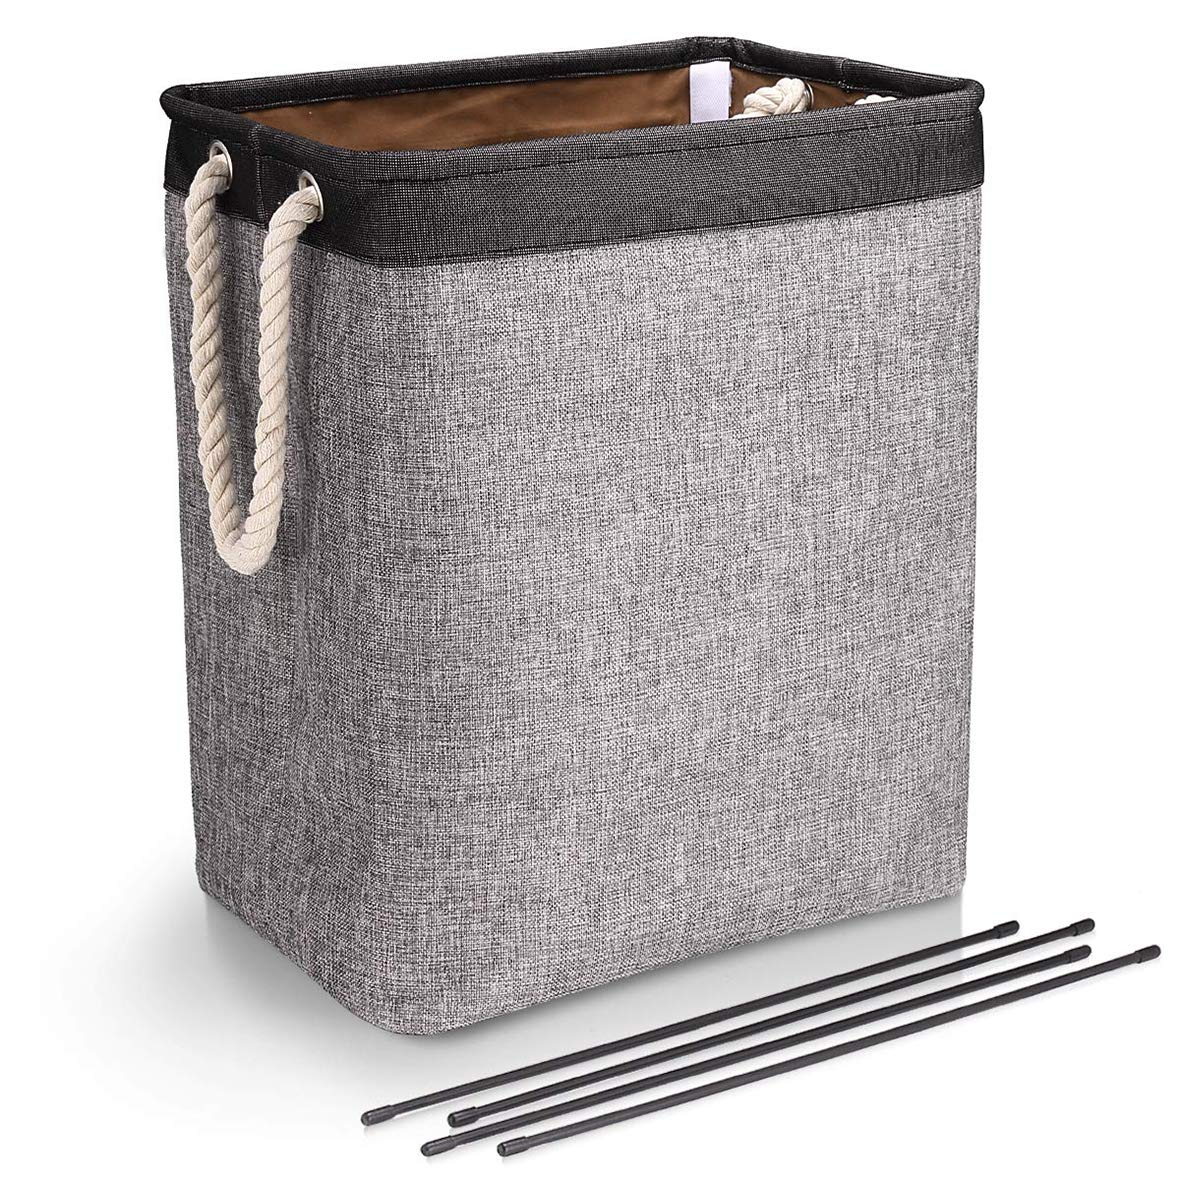 65L Laundry Basket Clothes Hamper with Handles Linen Hampers for Storage Bags Built-in Lining with Detachable Brackets Well-Holding Upgrade Foldable Laundry Hamper for Toys Clothing Organization